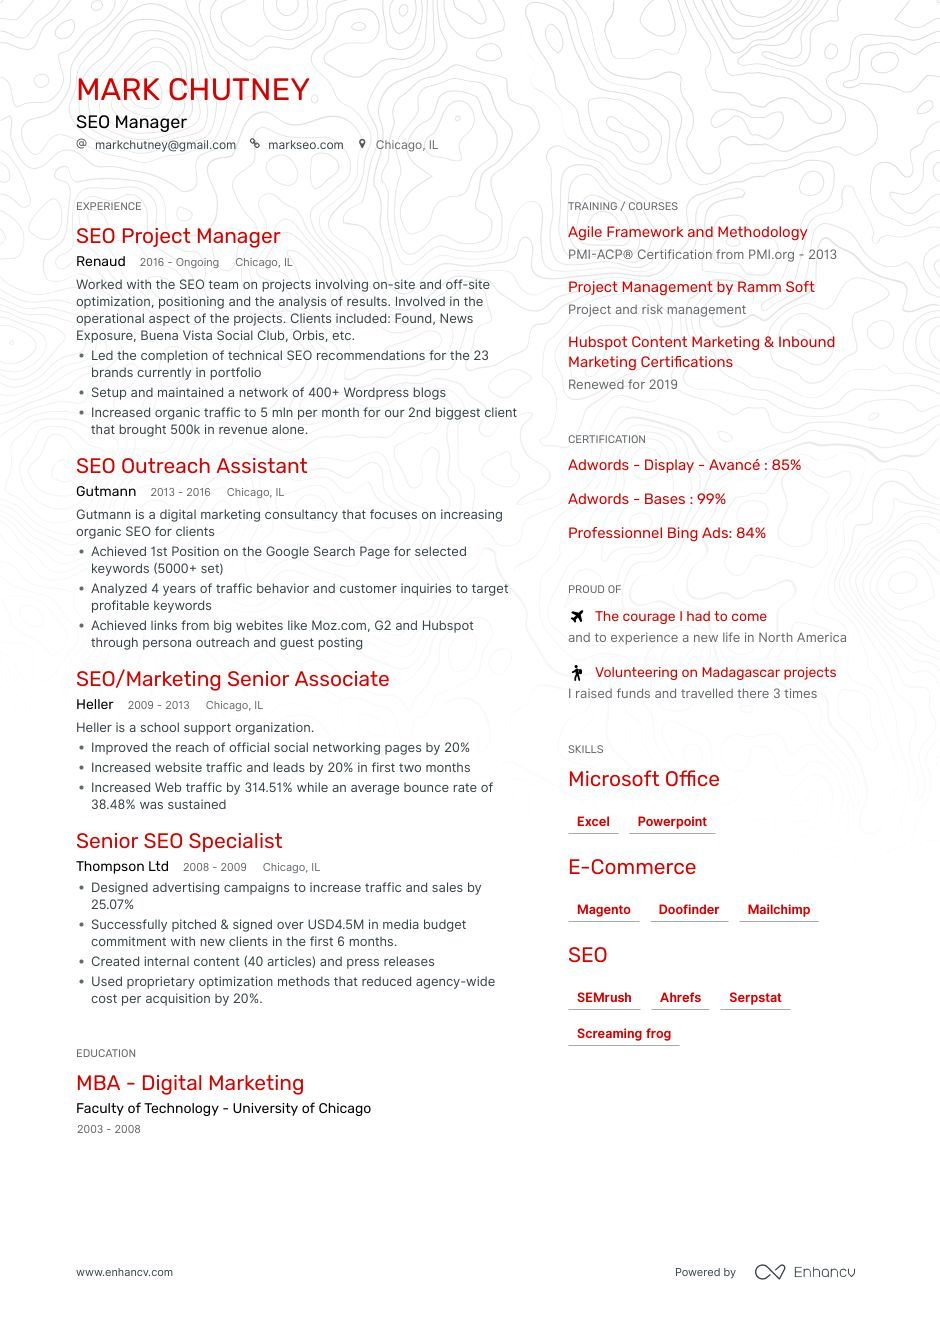 Get to know how to write a perfect SEO Manager resume in